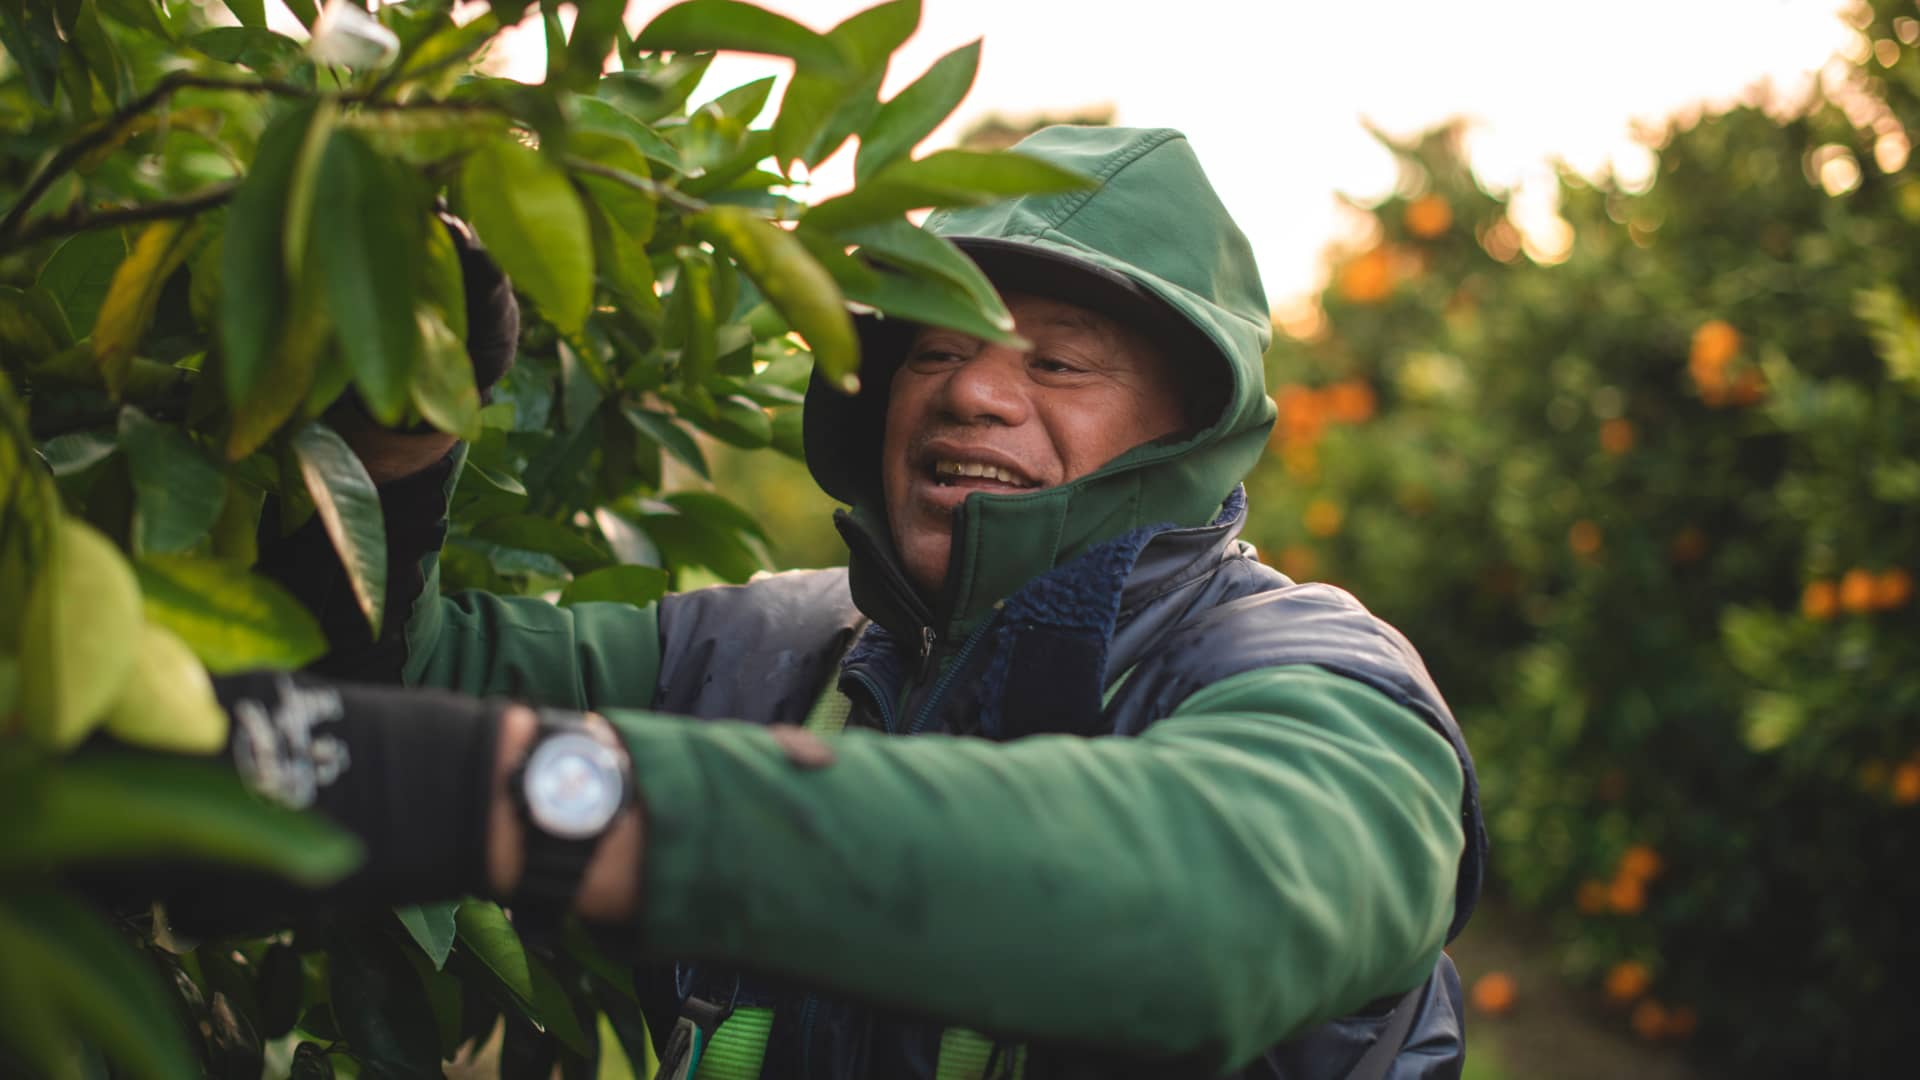 Our Immense Vulnerability To Seasonal Labour